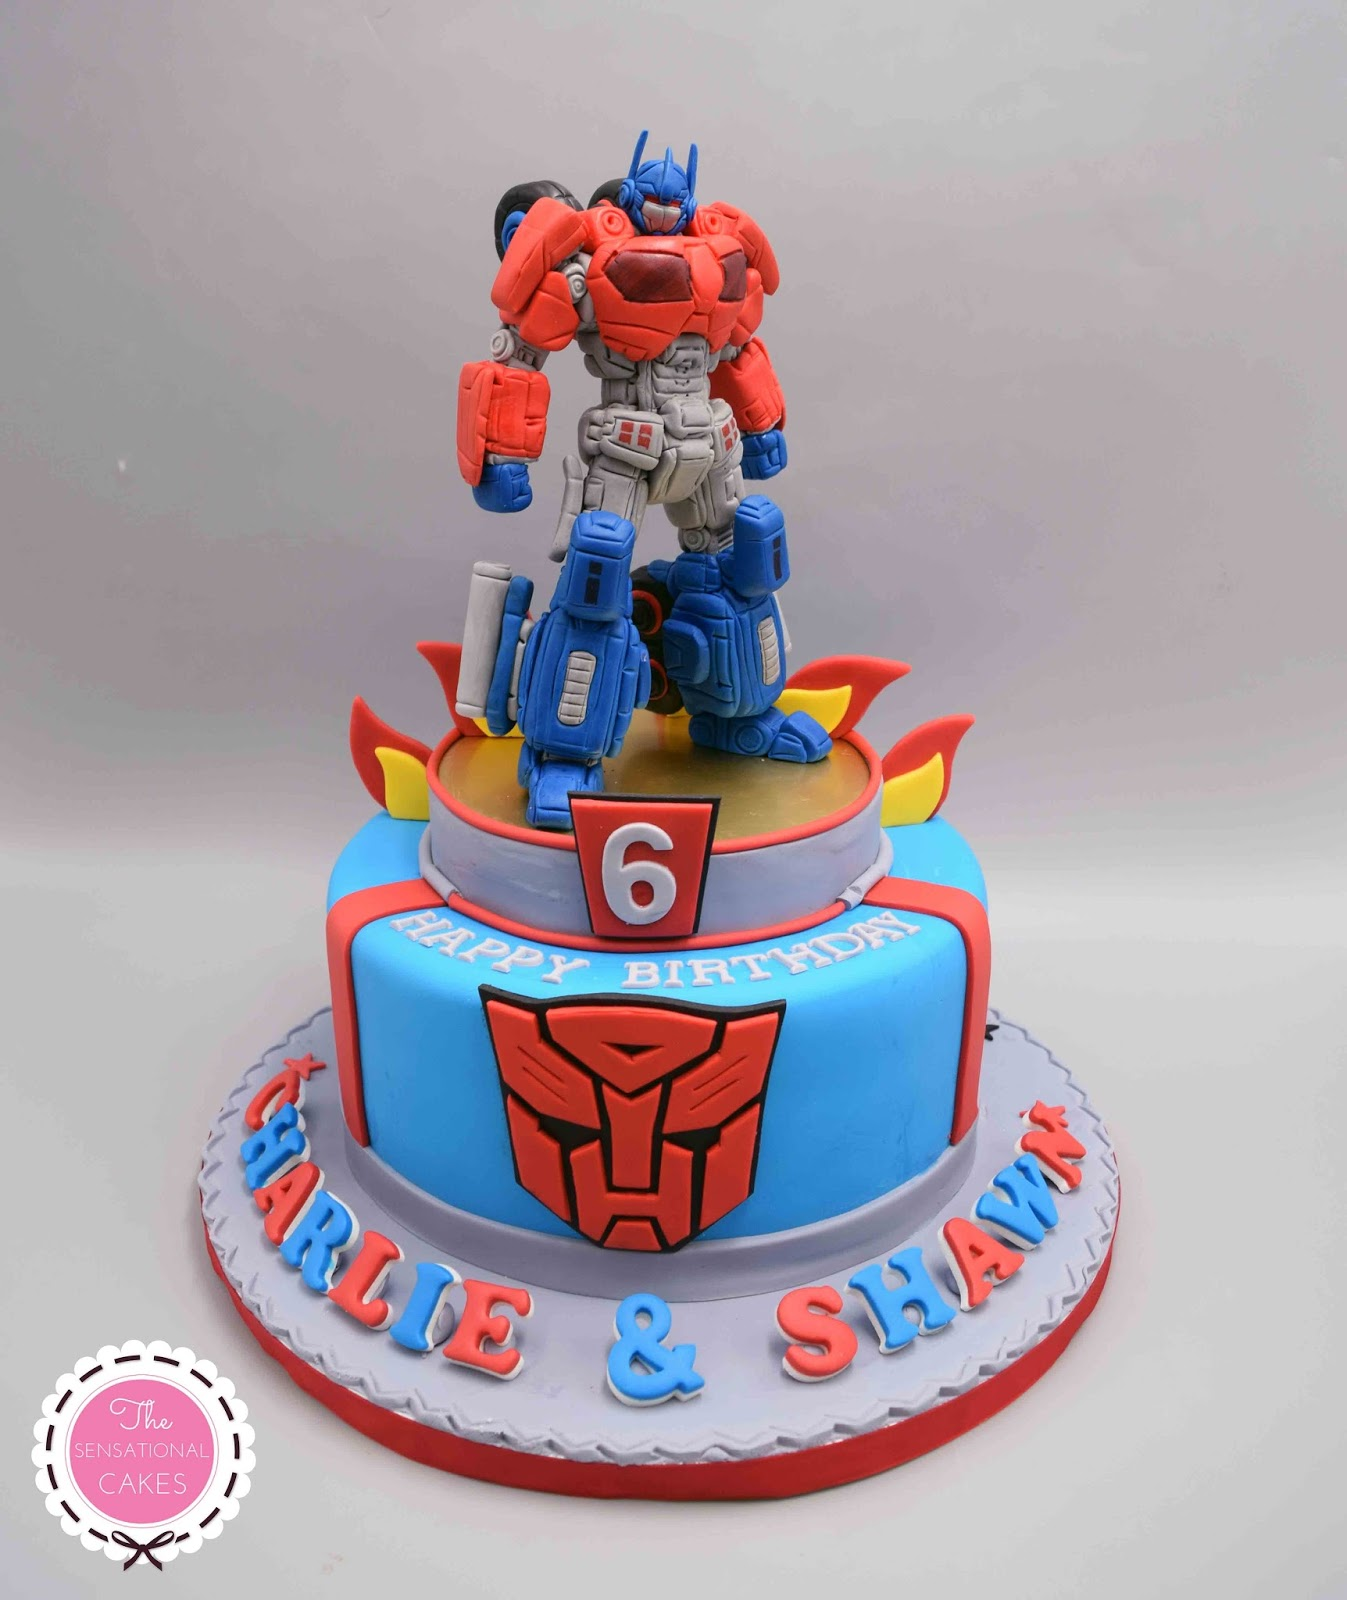 Marvelous The Sensational Cakes Transformers Theme 3D Birthday Cake Charlie Funny Birthday Cards Online Elaedamsfinfo